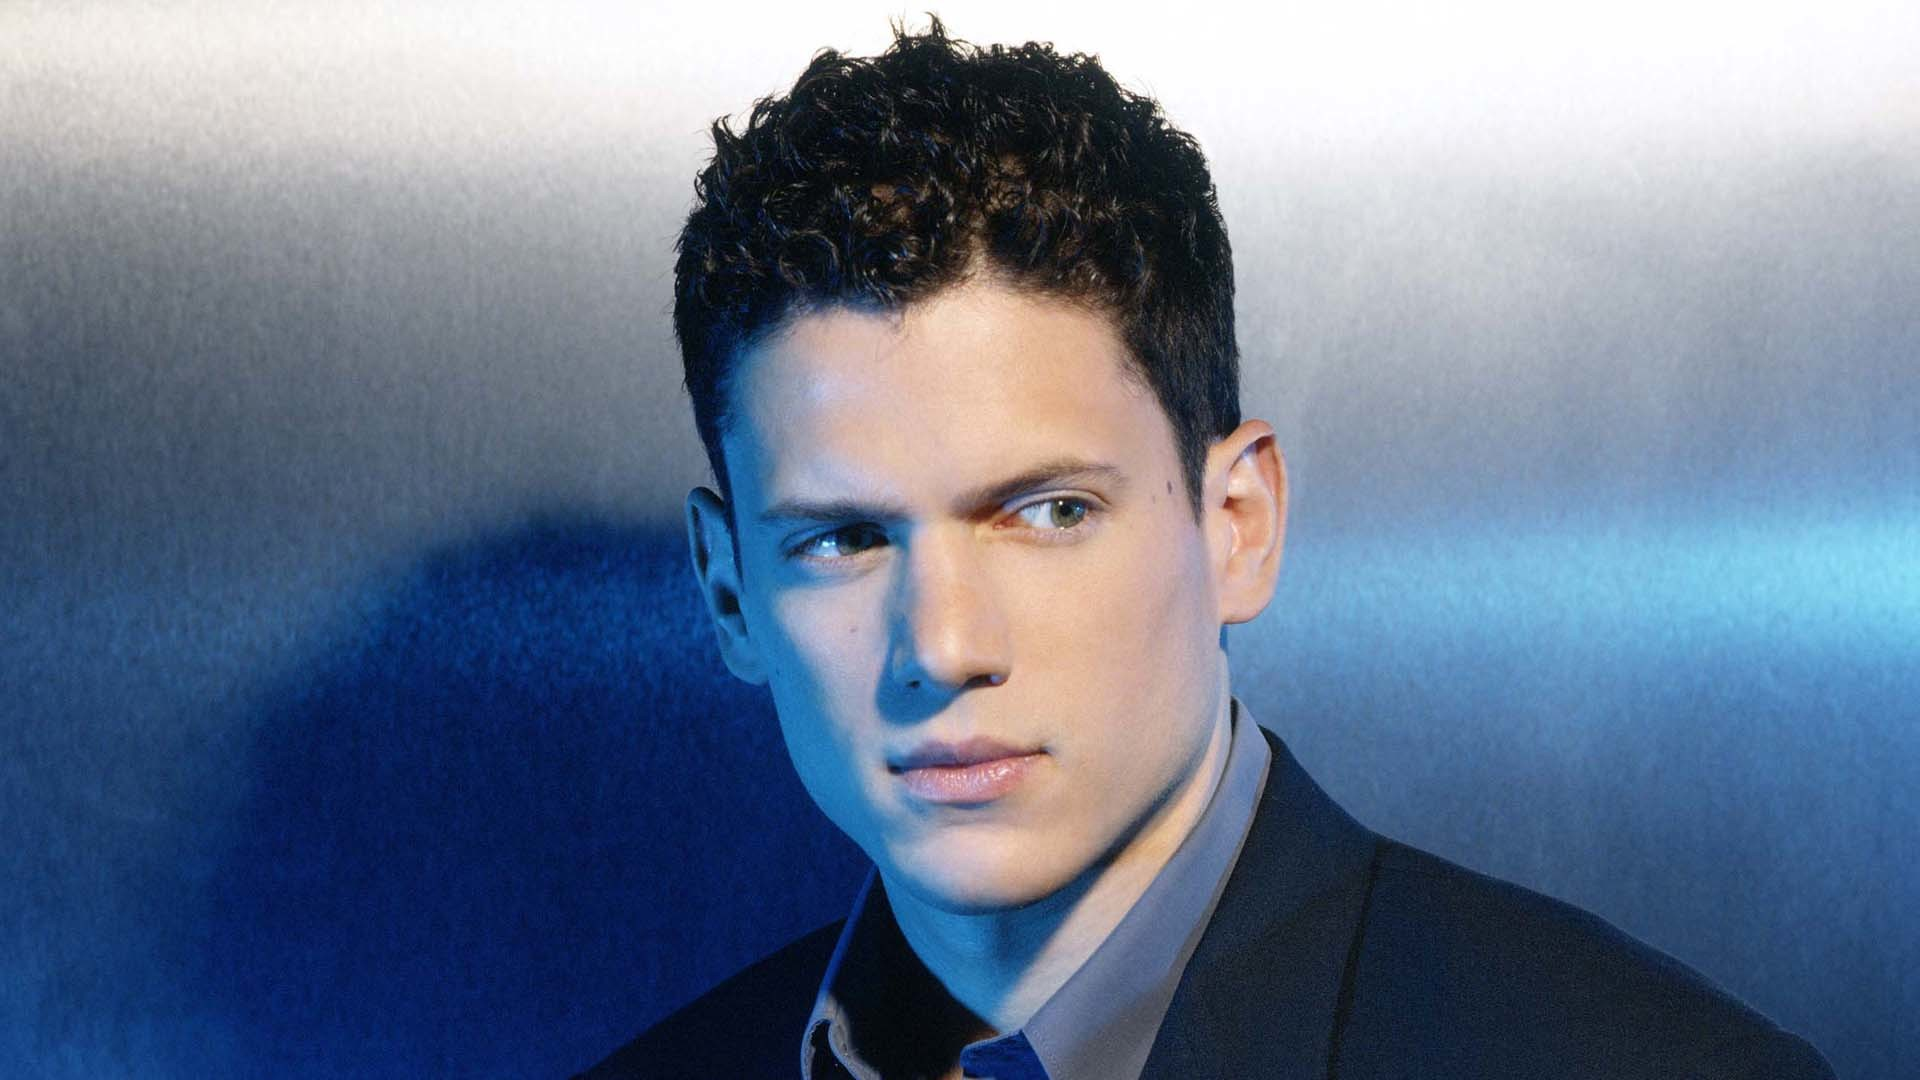 1920x1080 HD-Wentworth-Miller-Wallpapers-05.jpg (1920×1080)